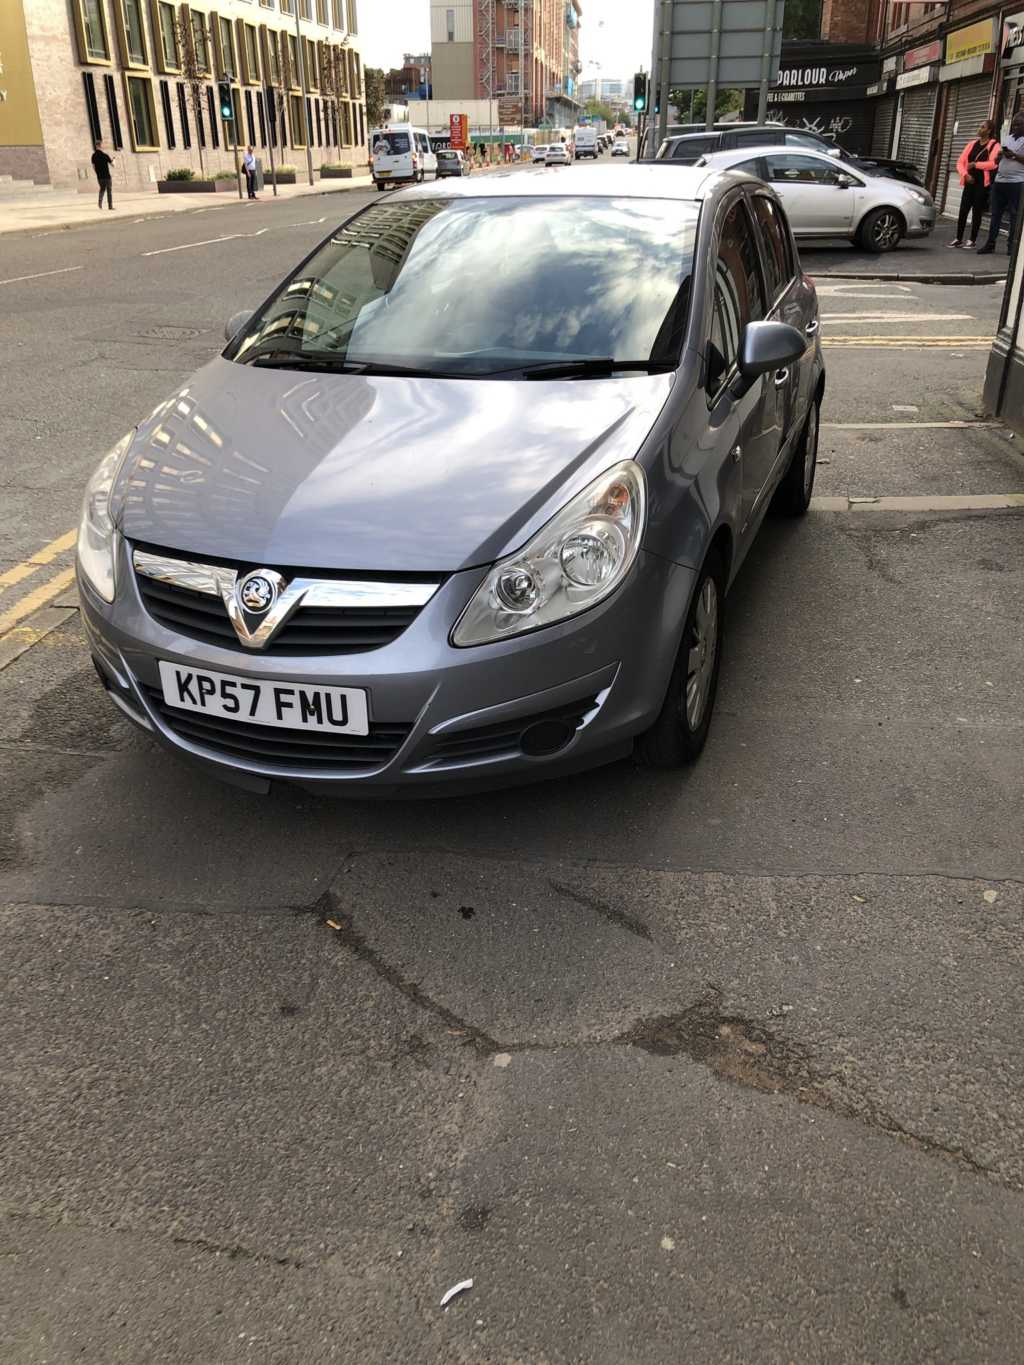 KP57 FMU displaying Inconsiderate Parking